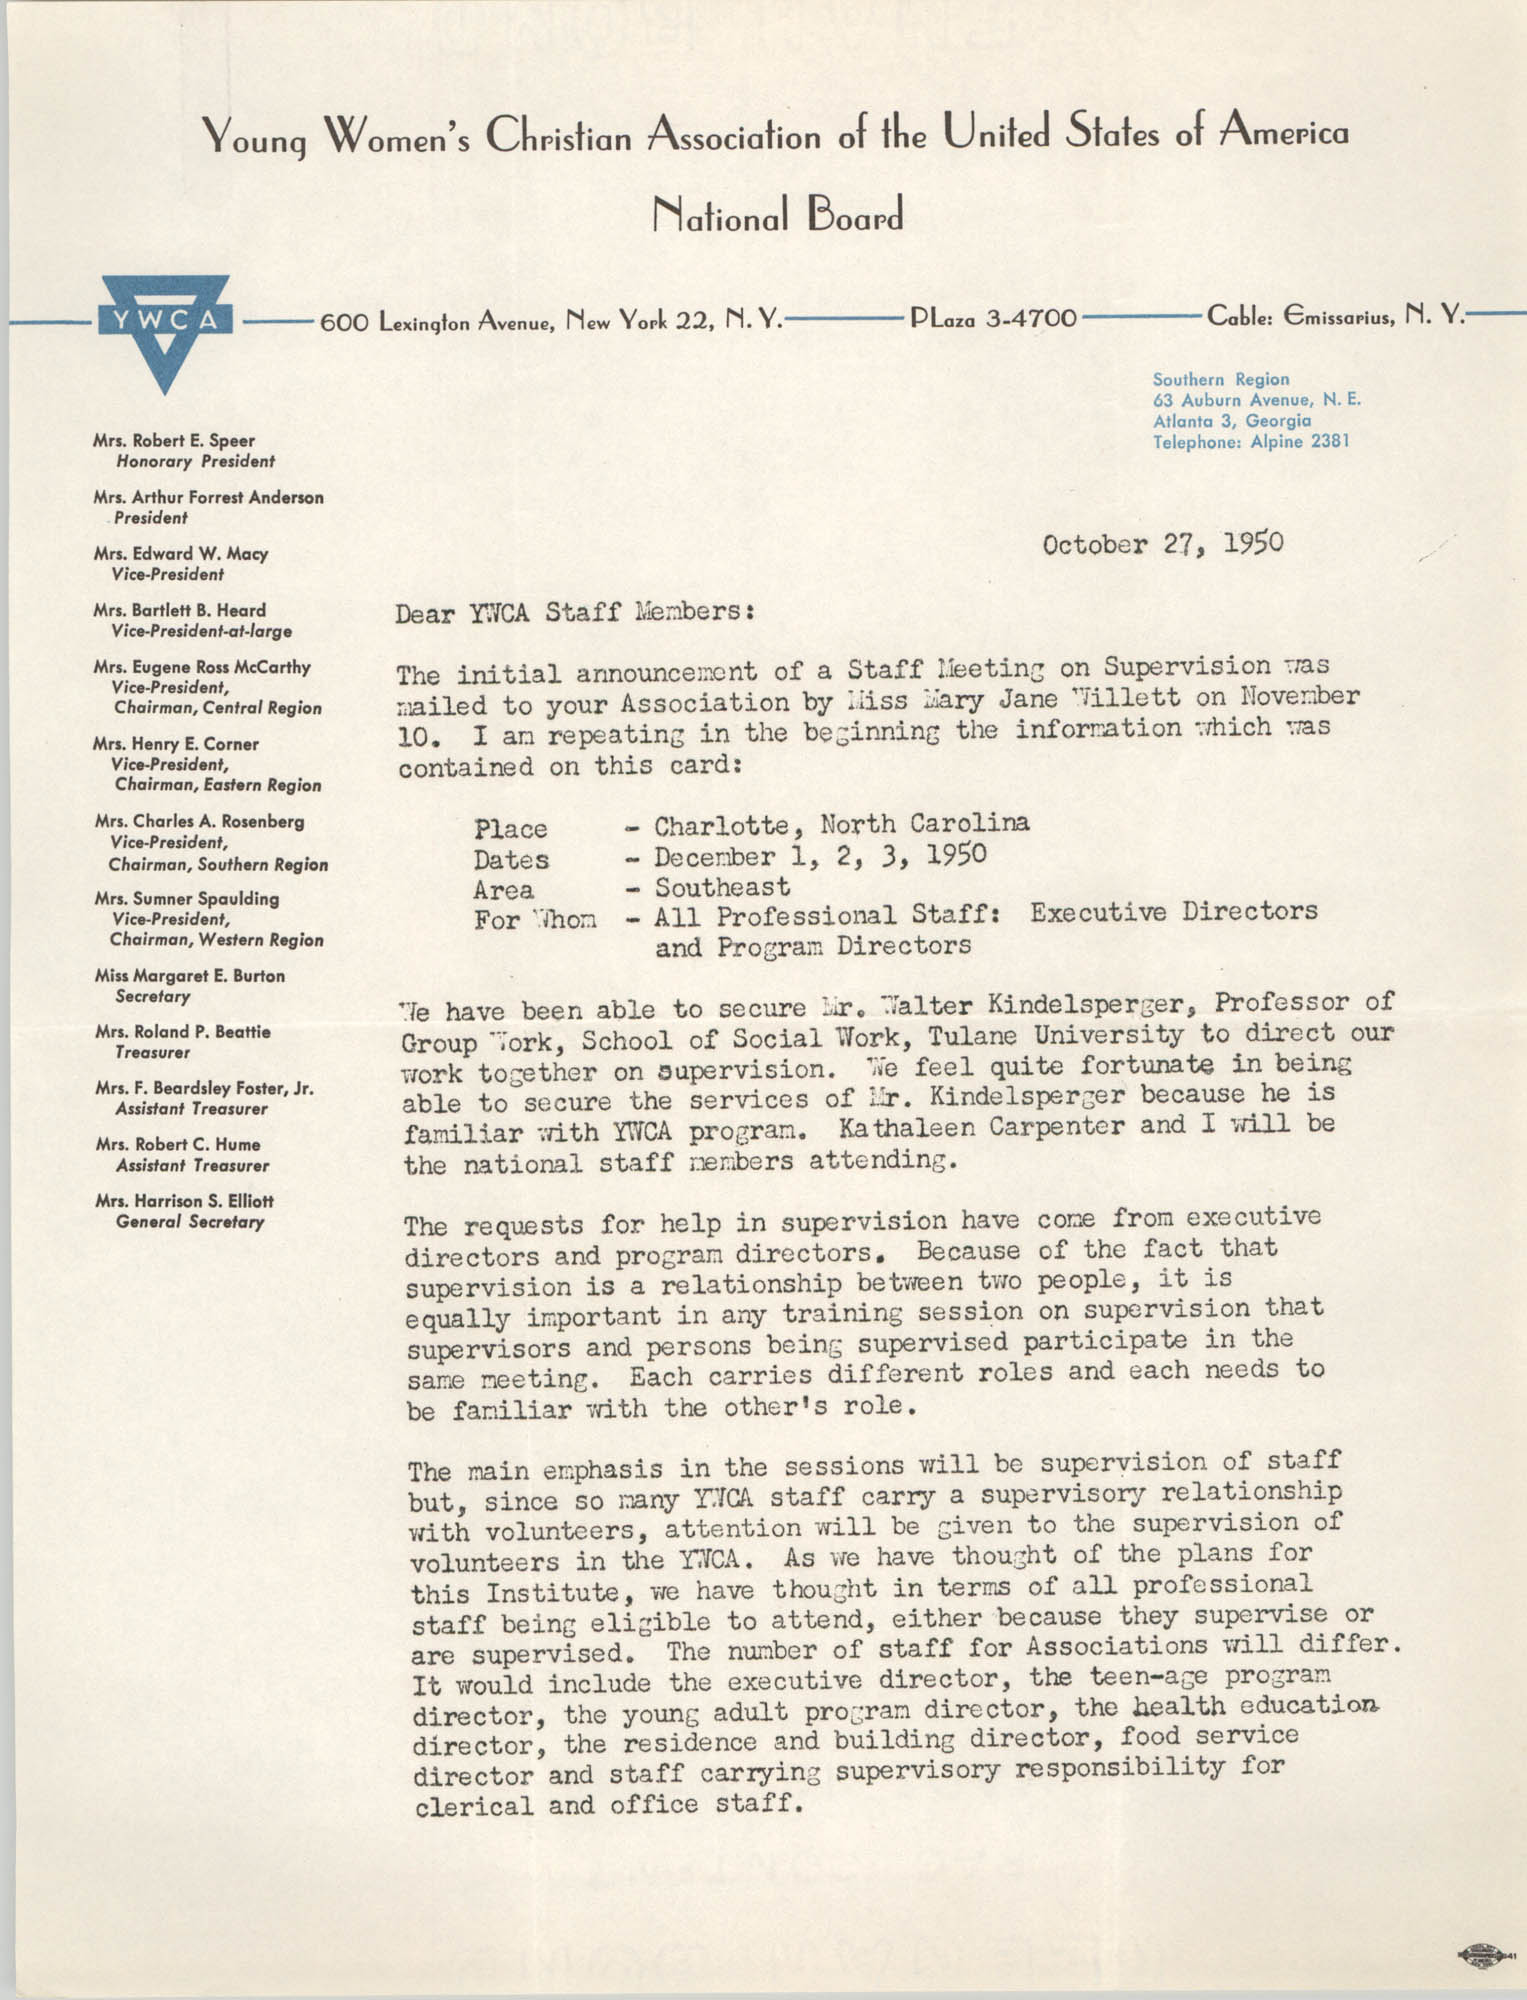 Letter from Florence C. Harris to Y.W.C.A. Staff Members, October 27, 1950